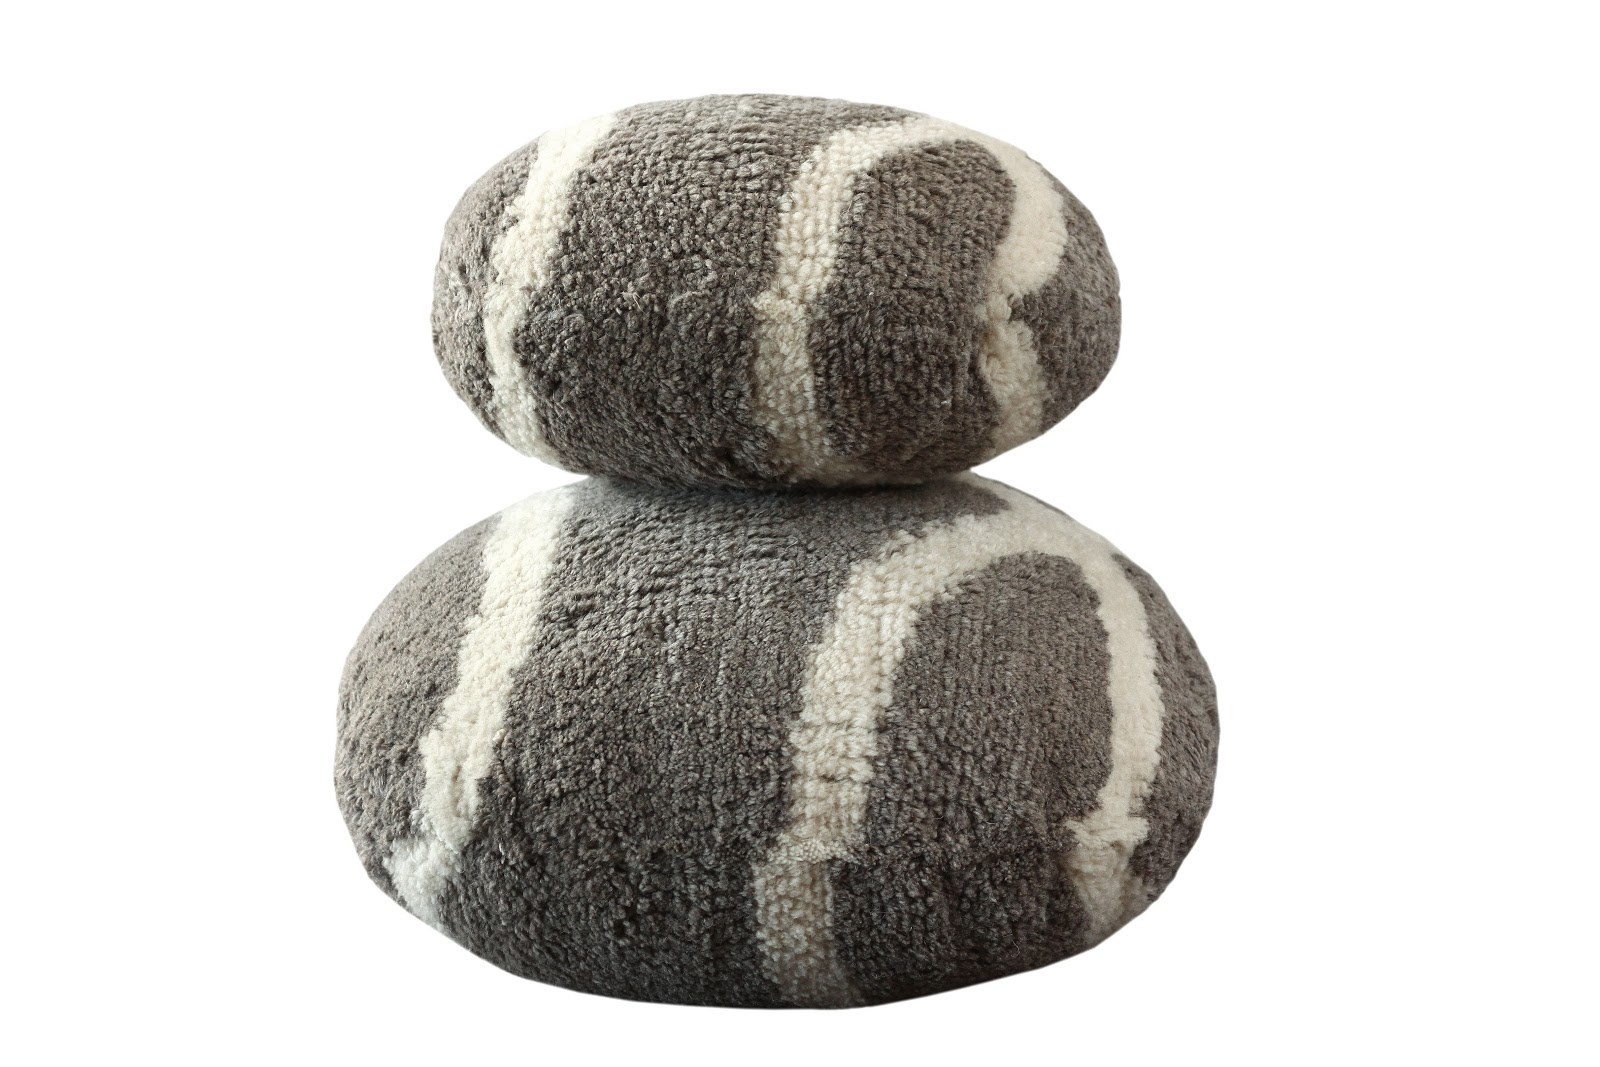 Floor Pillows Stones : Rosemary s Blog: Stone Floor Pillow